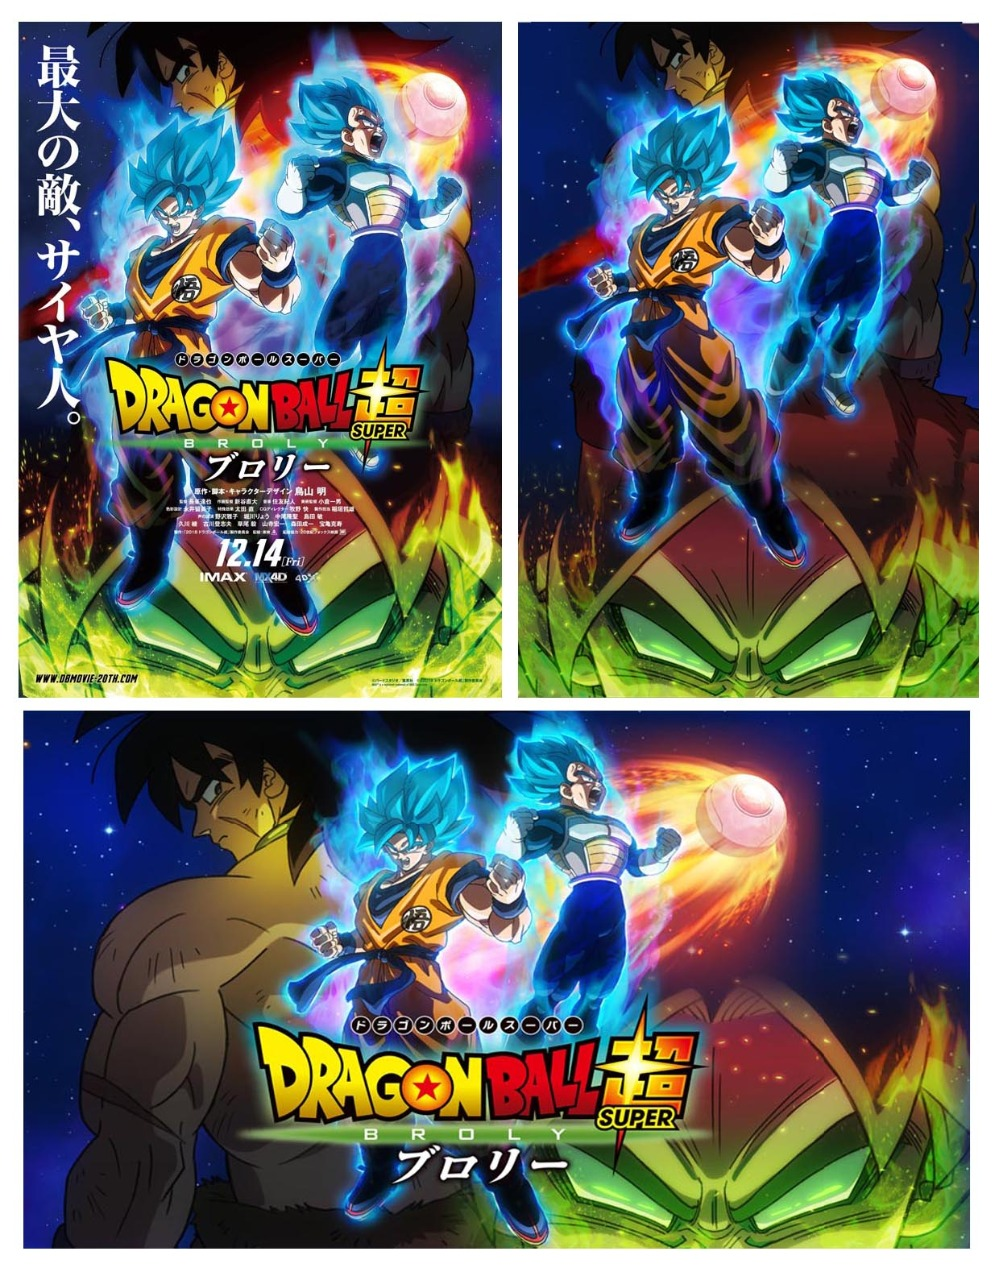 Mx007 Dragon Ball Super Broly Hot New 2018 Movie Japan Anime Comic Film A3 A4 A2 Poster Art Silk Canvas Room Wall Print Decor